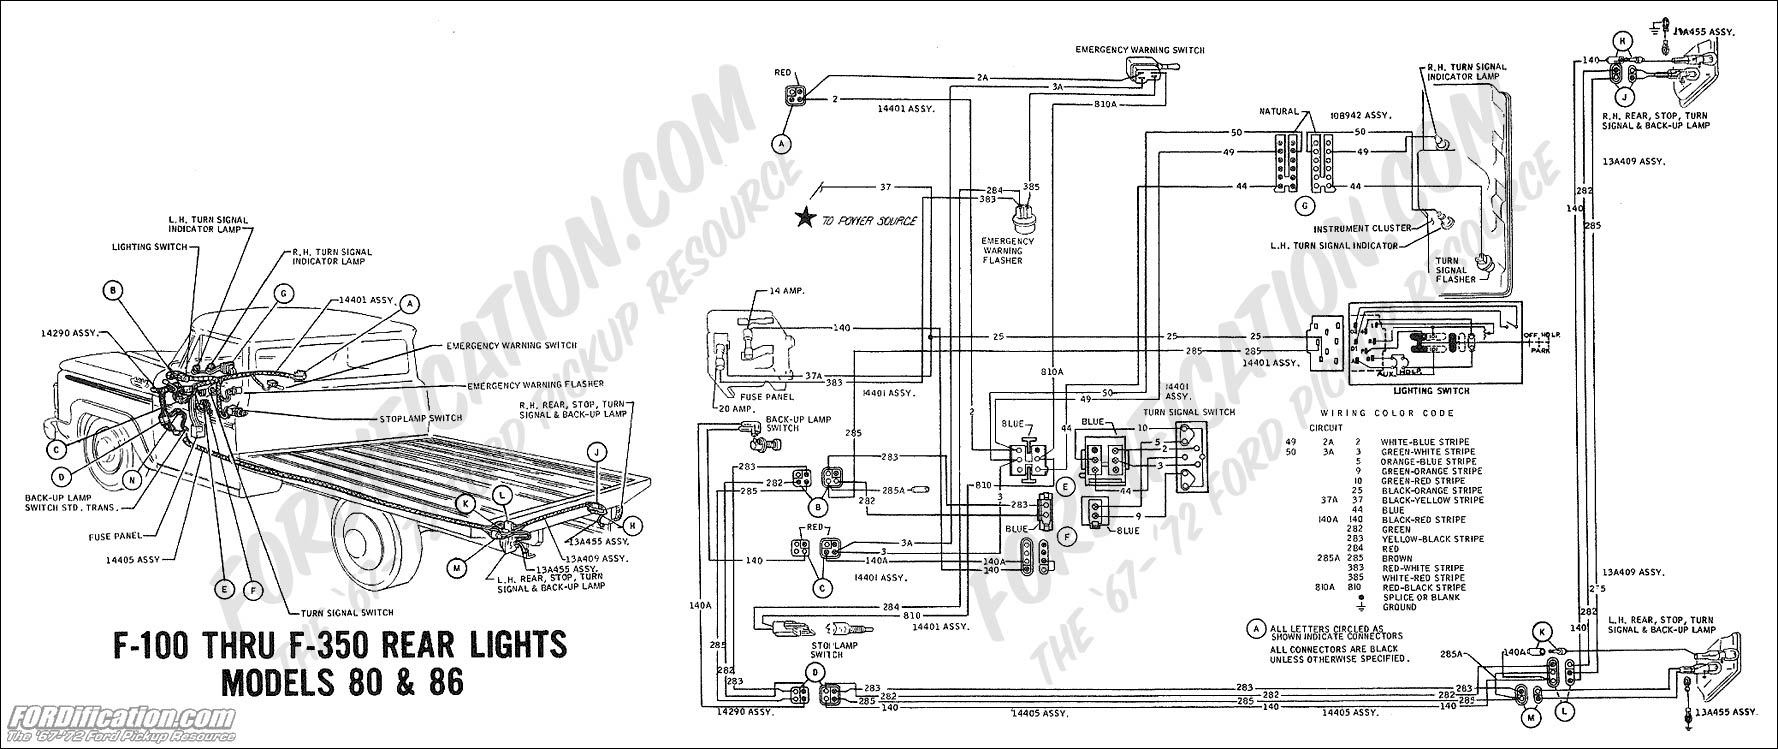 hight resolution of 1972 chevy c10 wiring diagram furthermore tail light wiring diagram toyota starlet racing furthermore 2006 chevy silverado trailer wiring